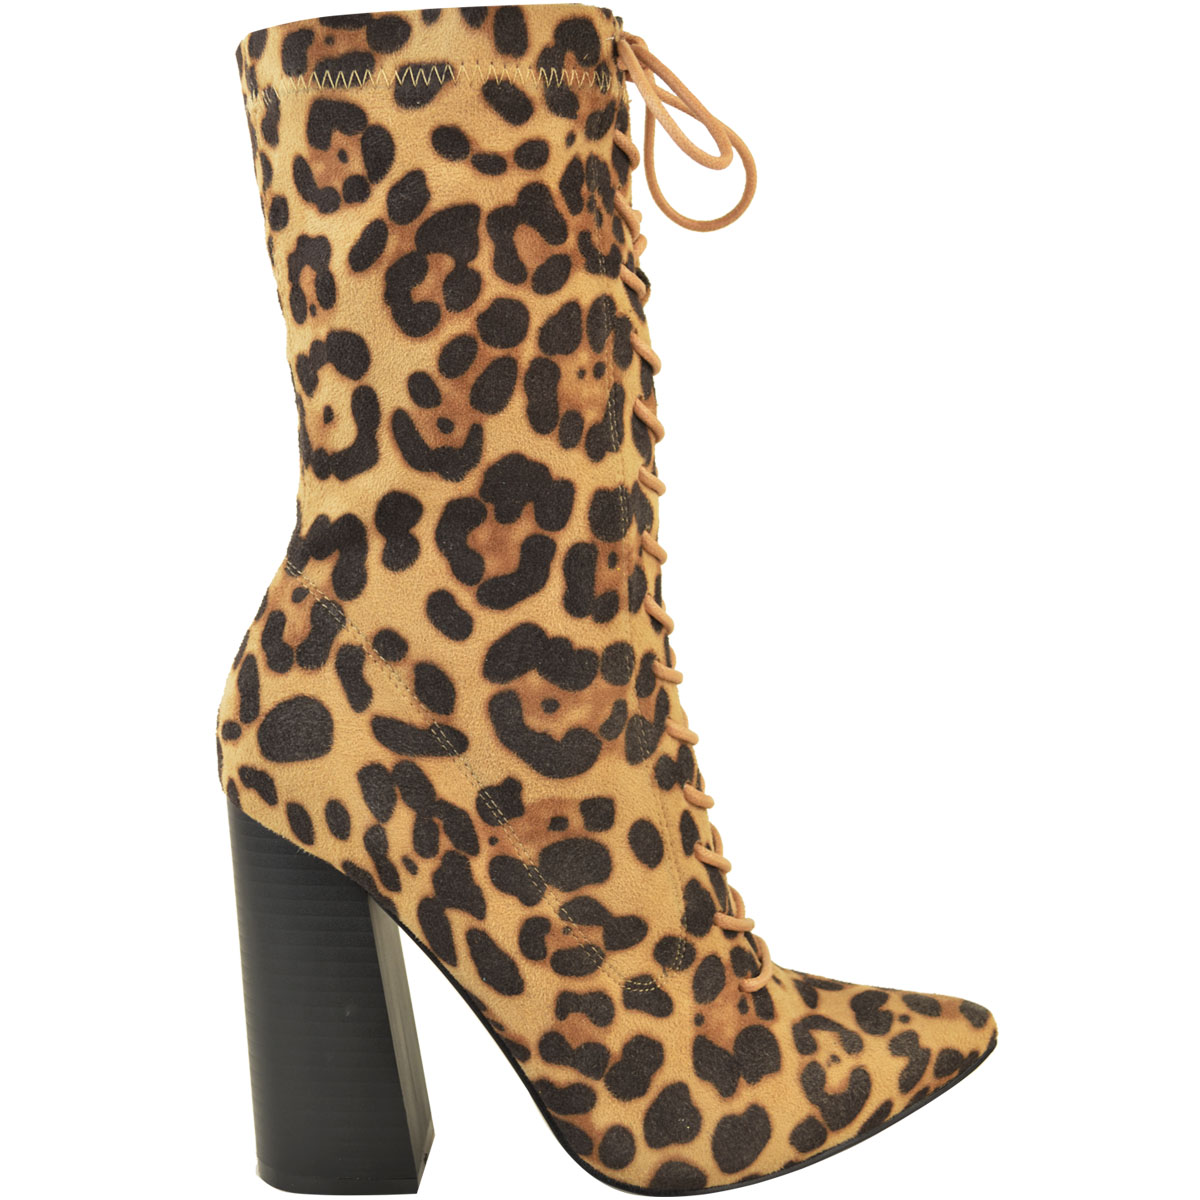 Womens-Ladies-New-Calf-Ankle-Boots-Lycra-Lace-Up-Shoes-Pointed-Toe-Stretch-Size miniatuur 15